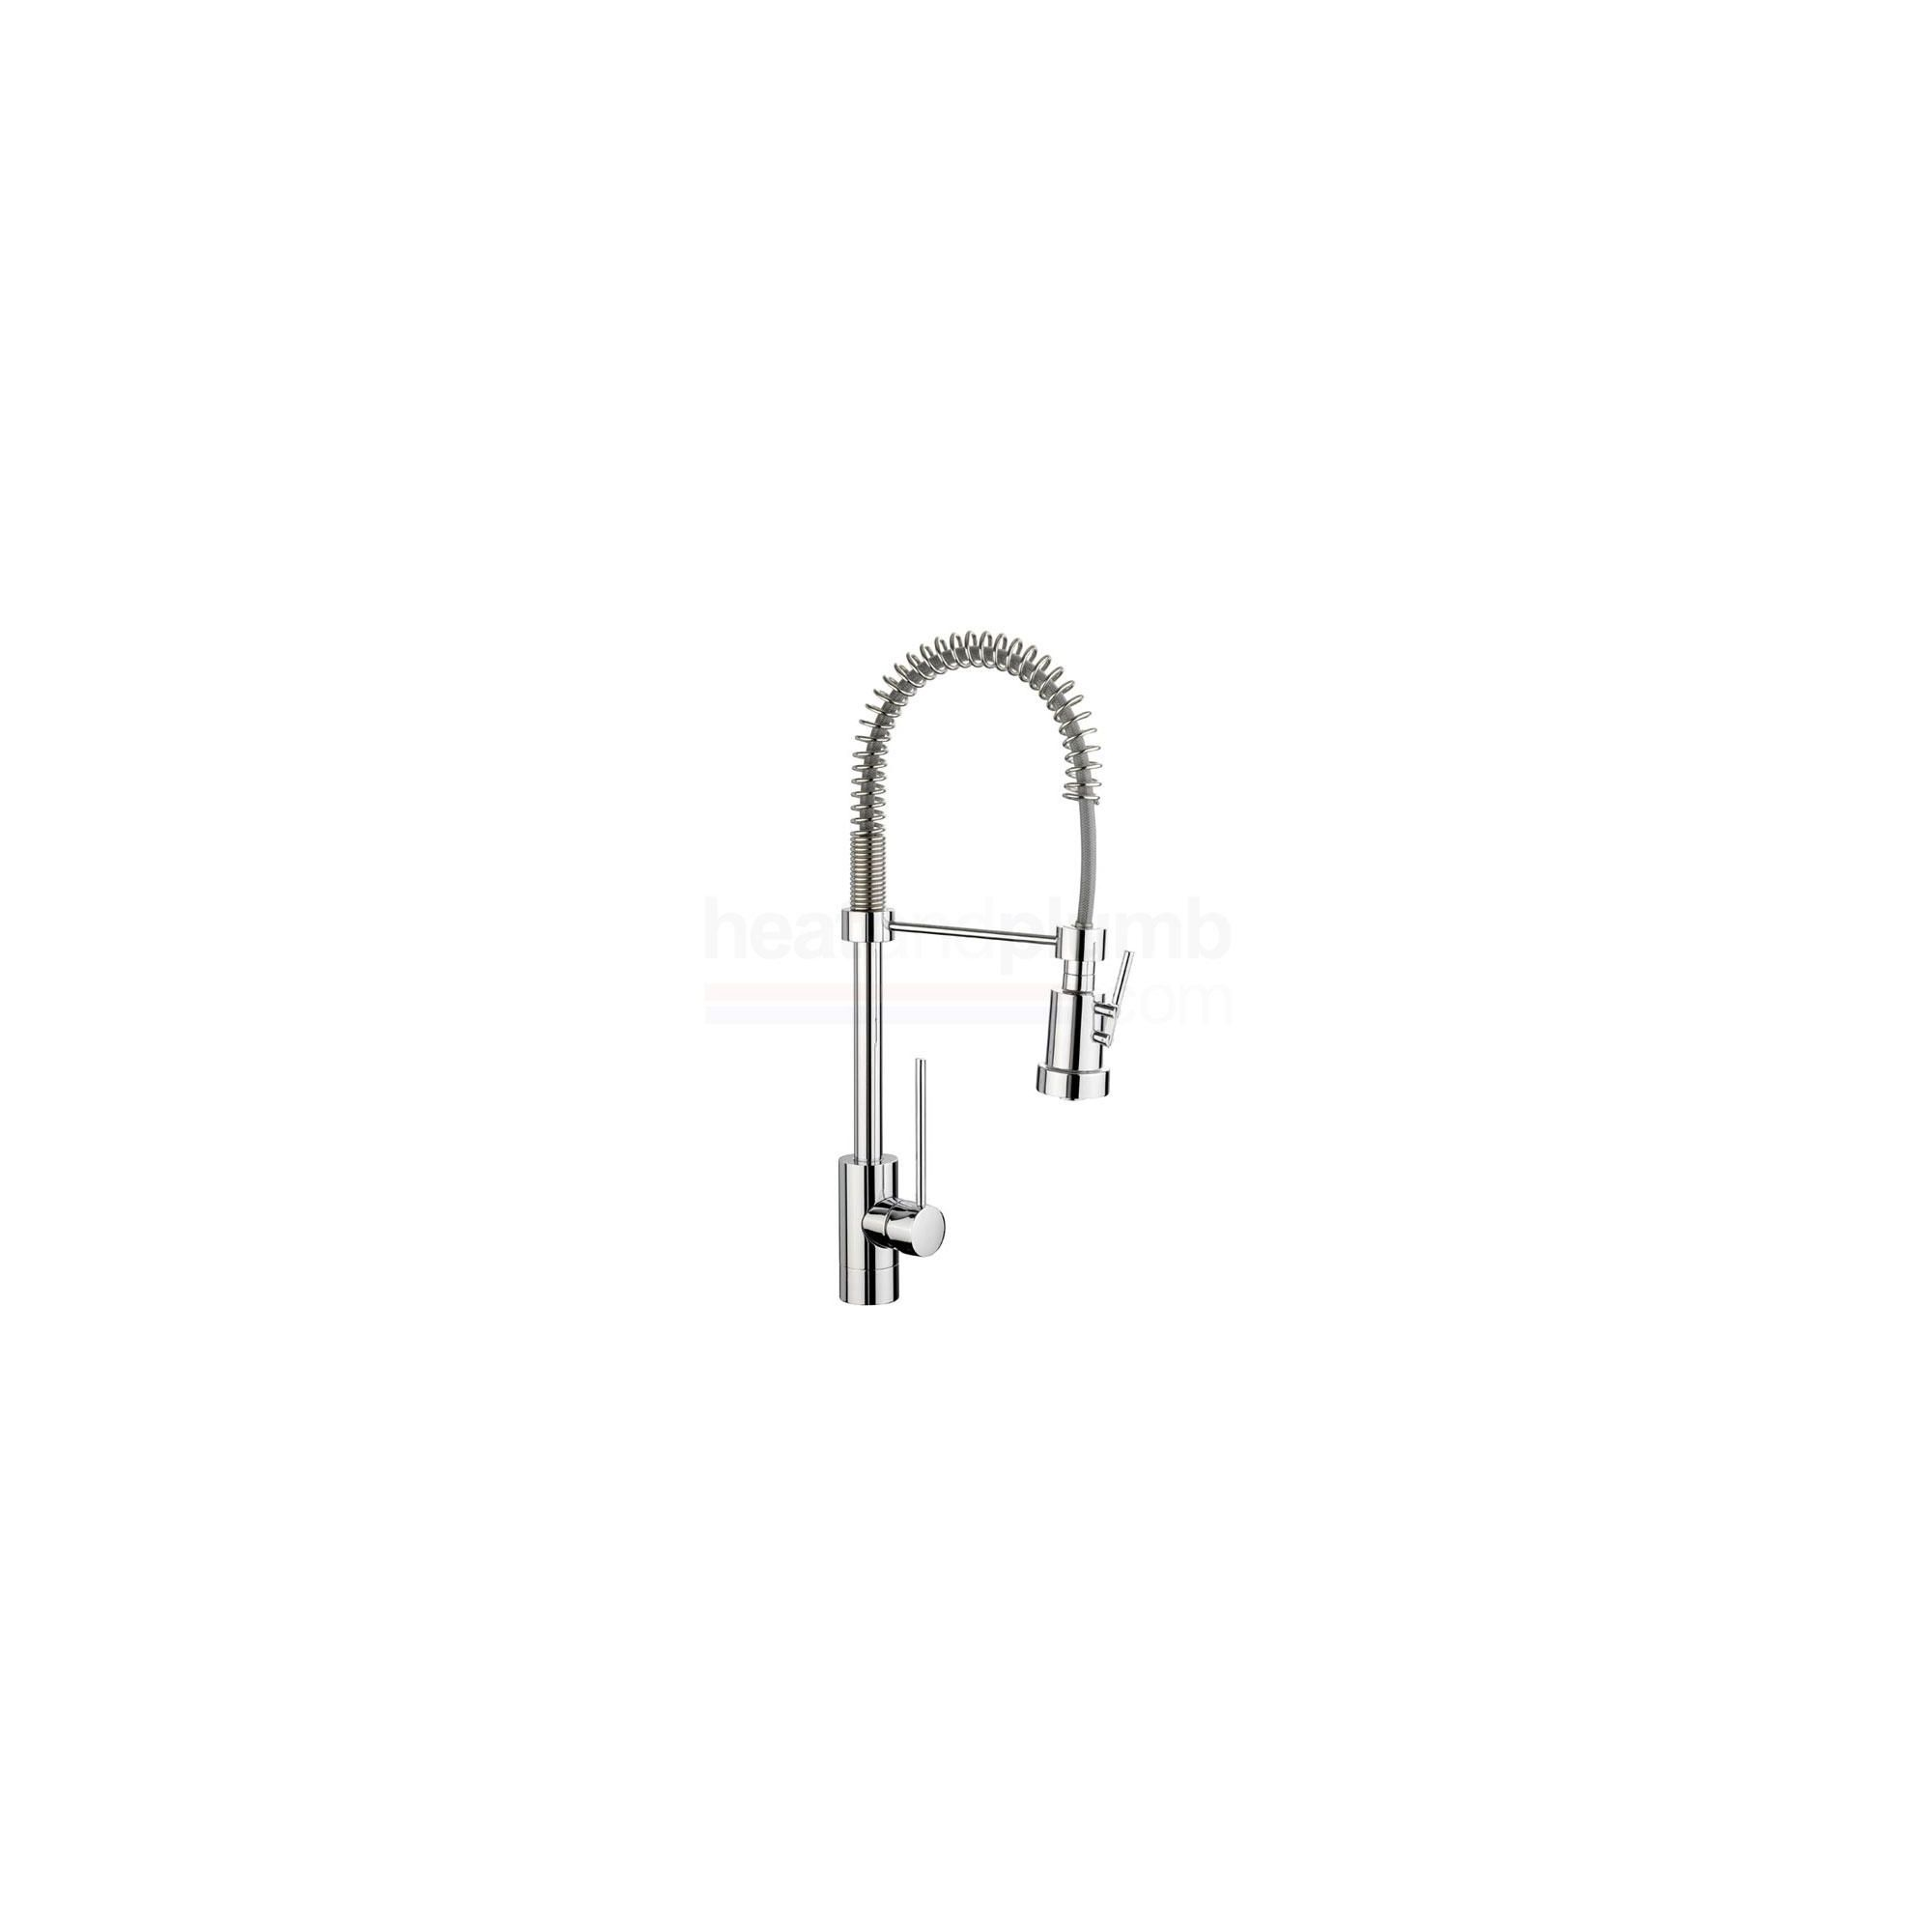 Rangemaster Pro Spray Single Lever Mono Kitchen Sink Mixer Tap Chrome at Tesco Direct